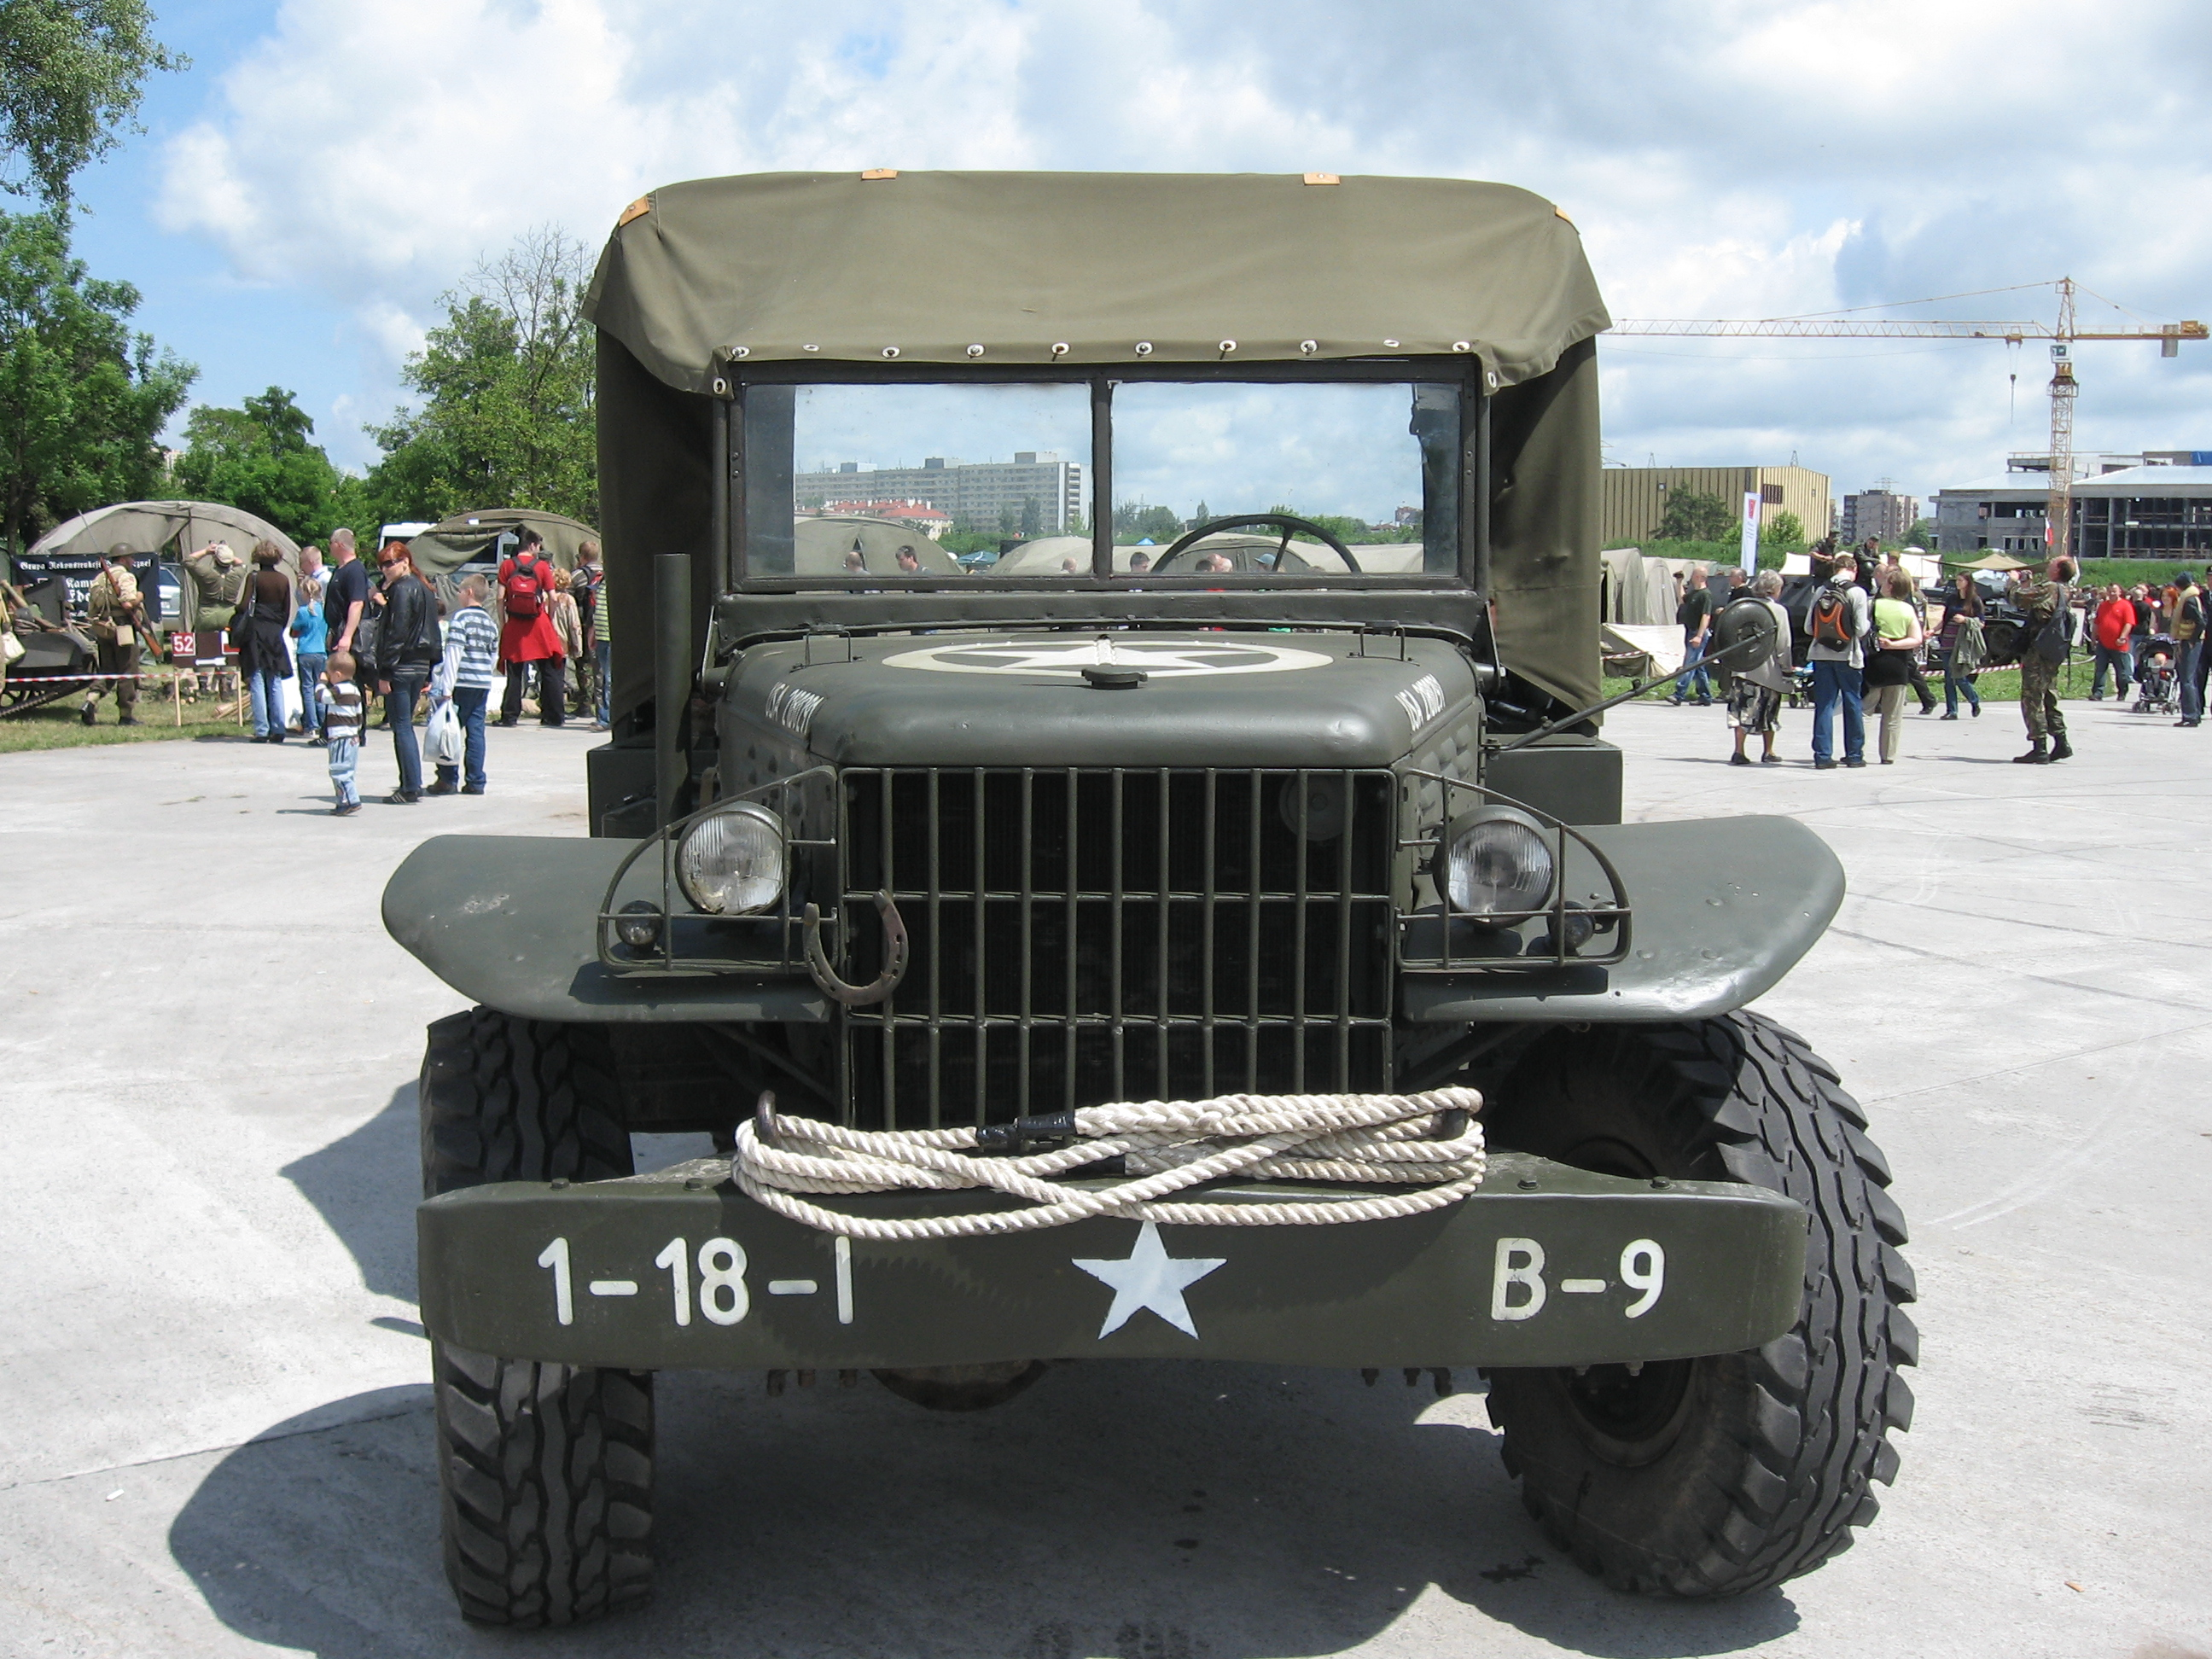 Build A Dodge >> File:Dodge WC-51 during the VII Aircraft Picnic in Kraków ...